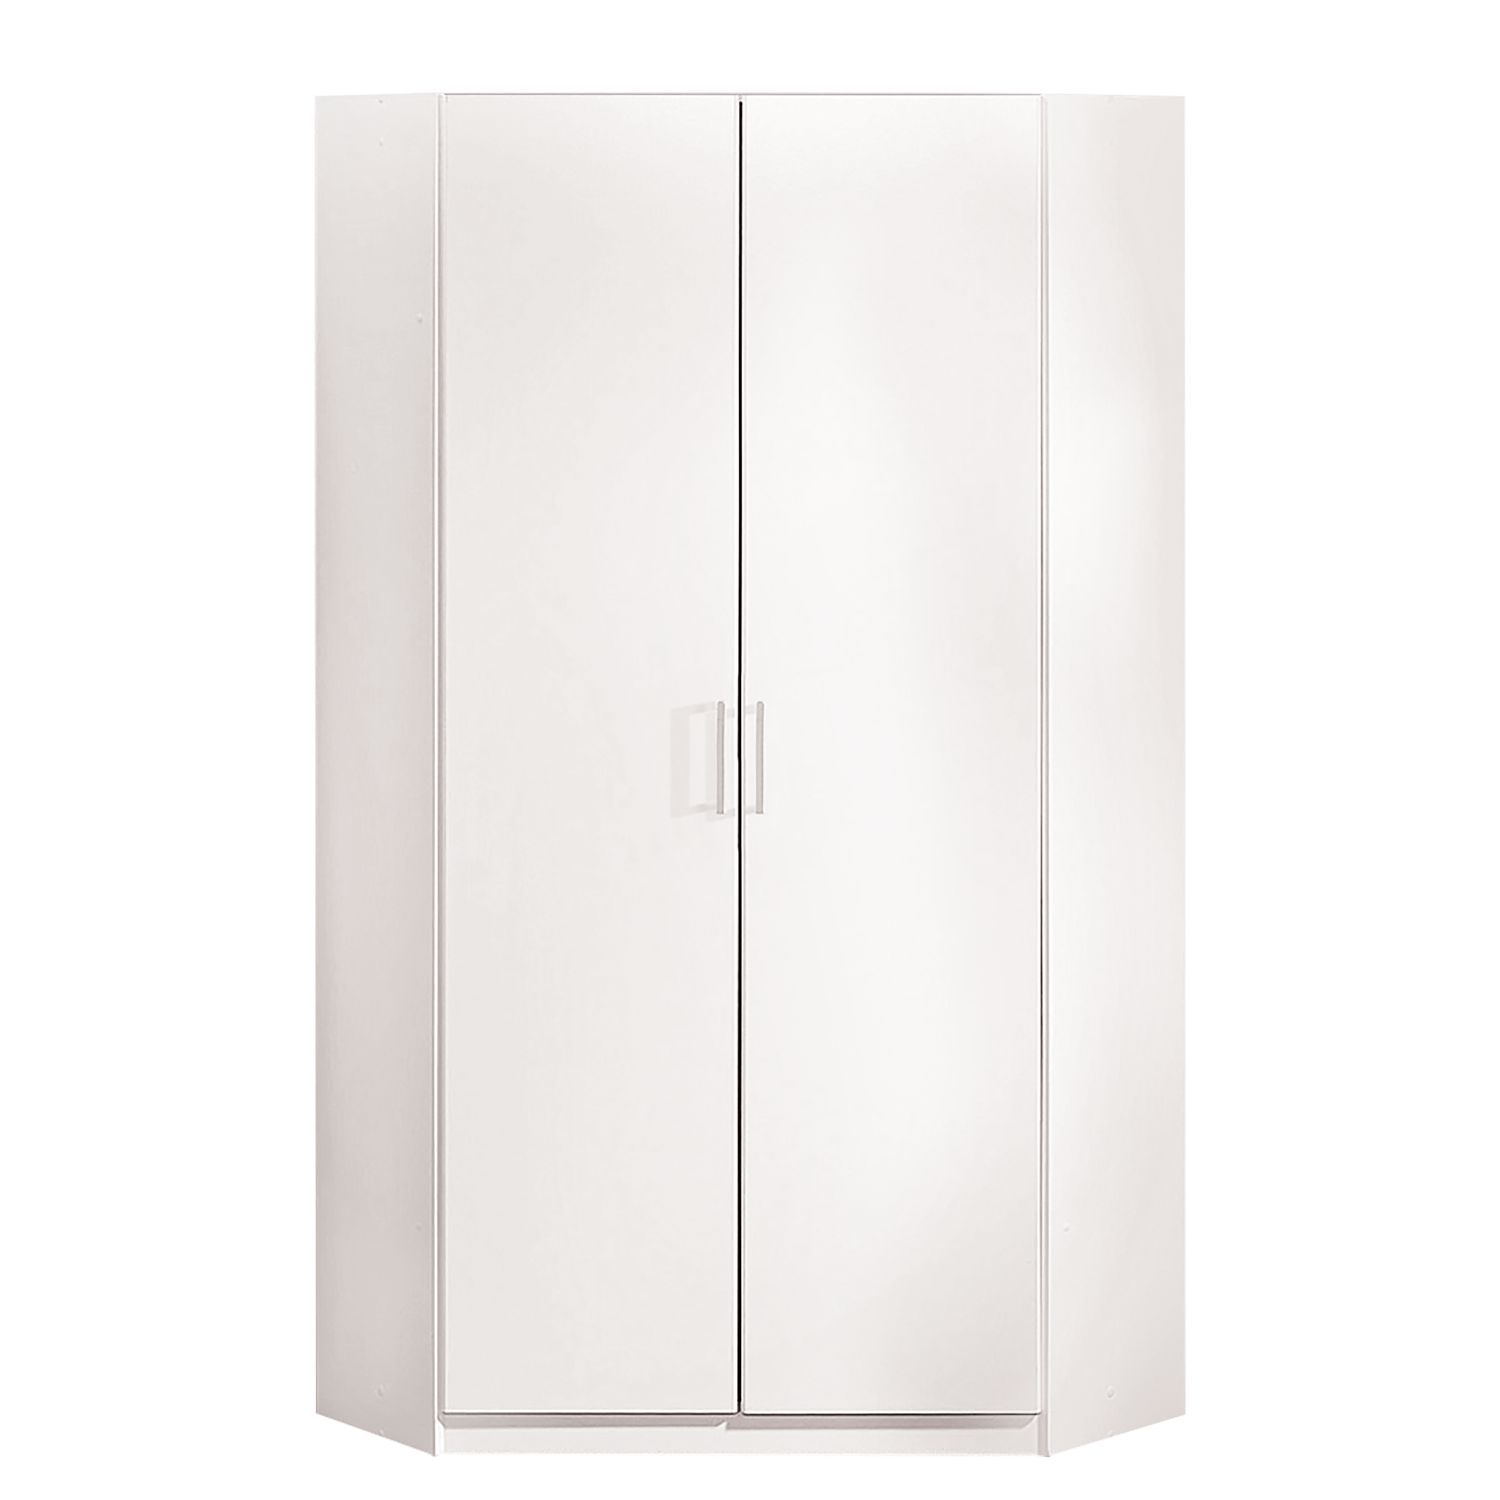 Armoire d'angle Omega - Blanc alpin, Wimex